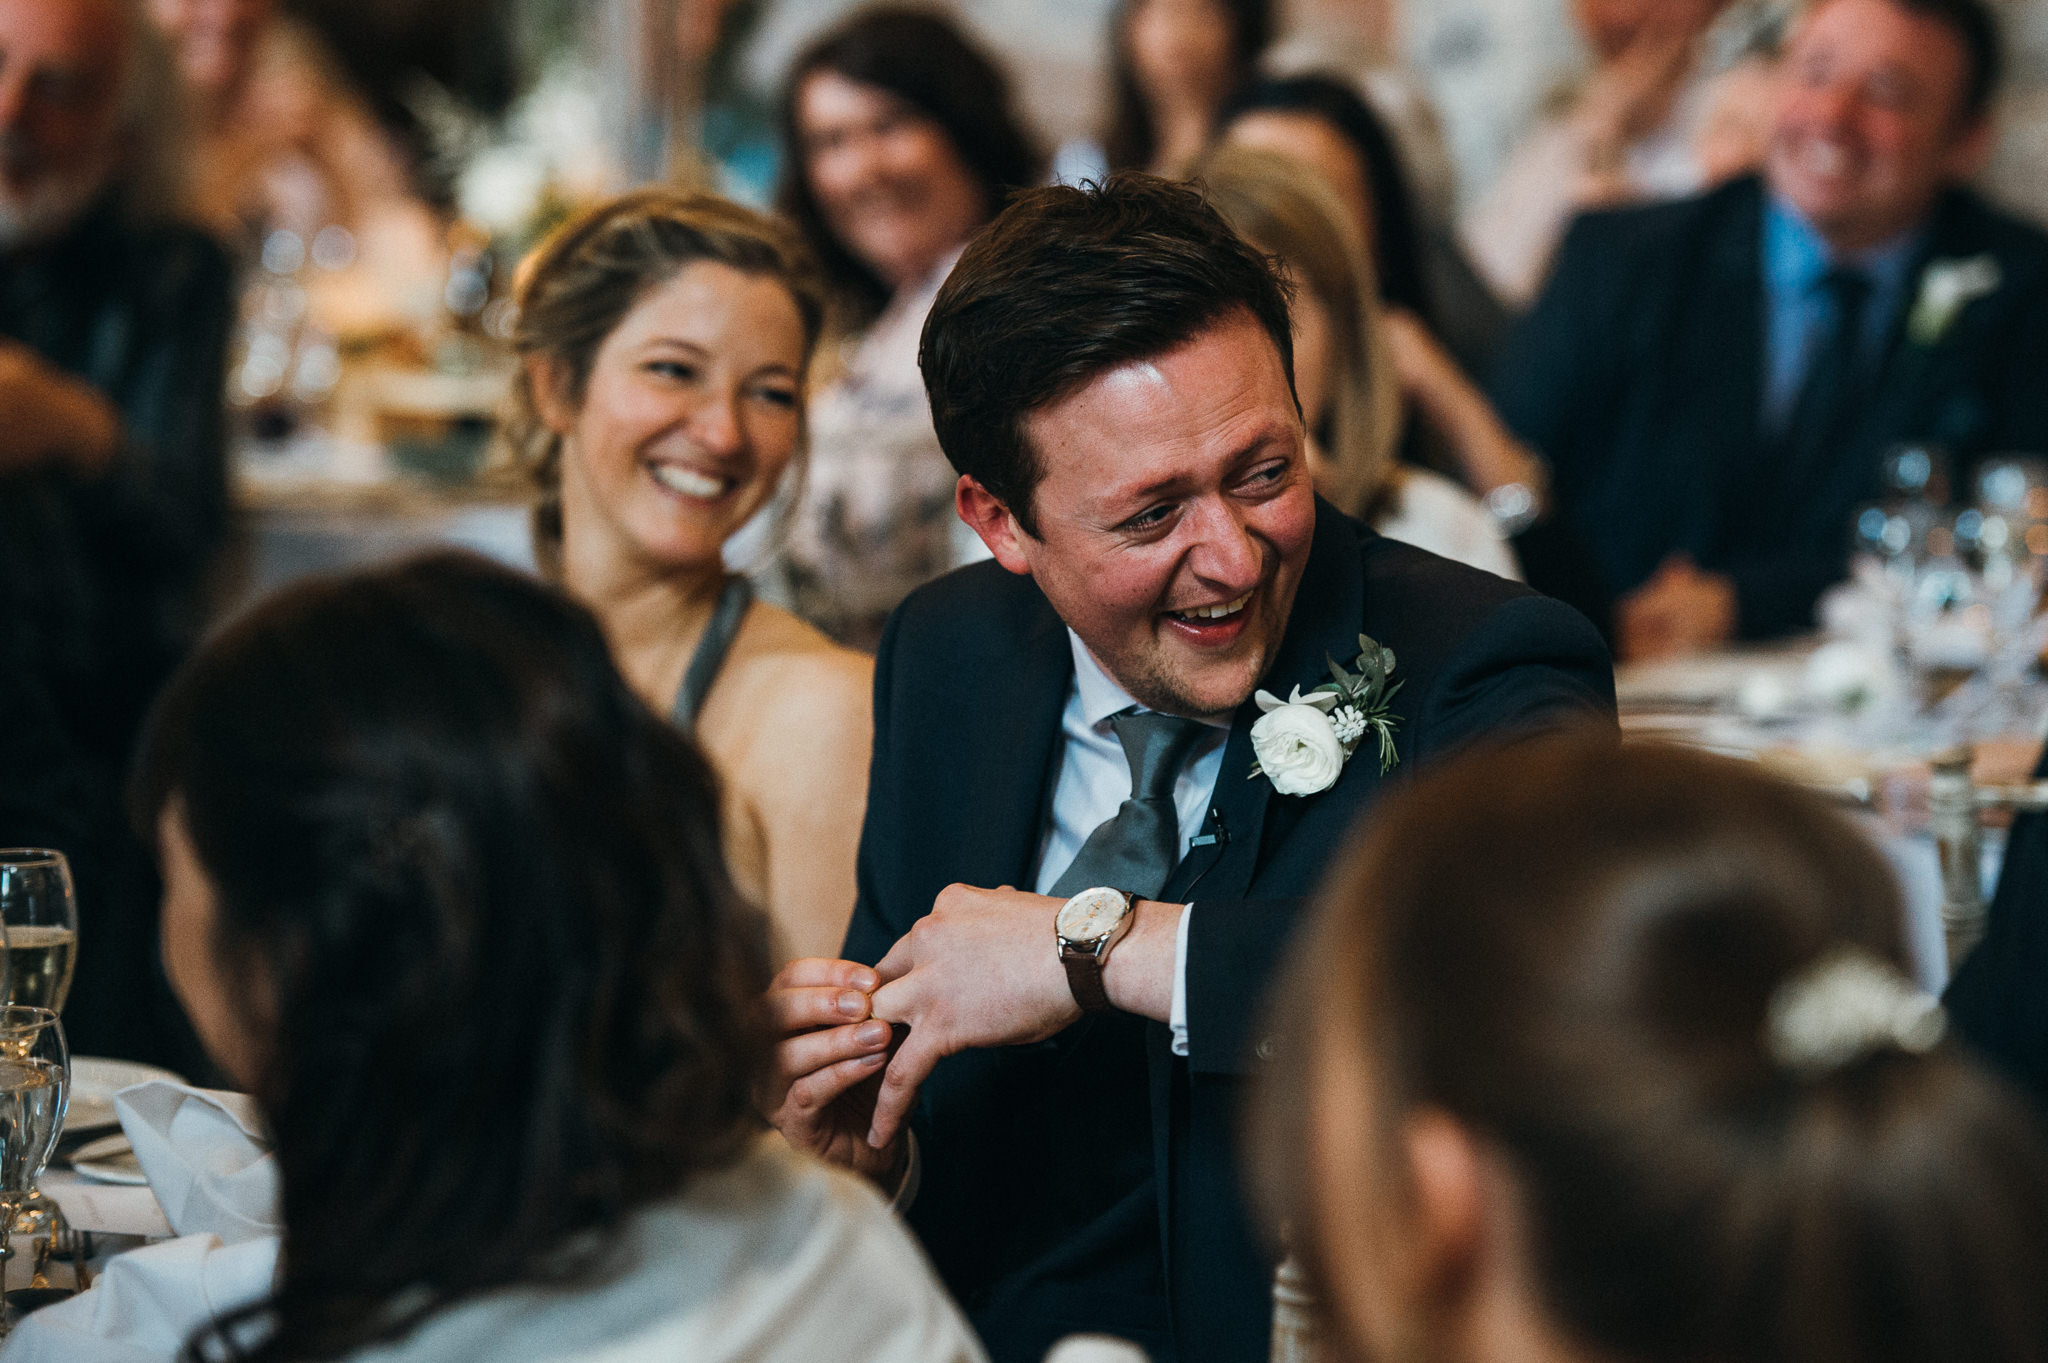 guests react to speech at wedding at the almonry barn